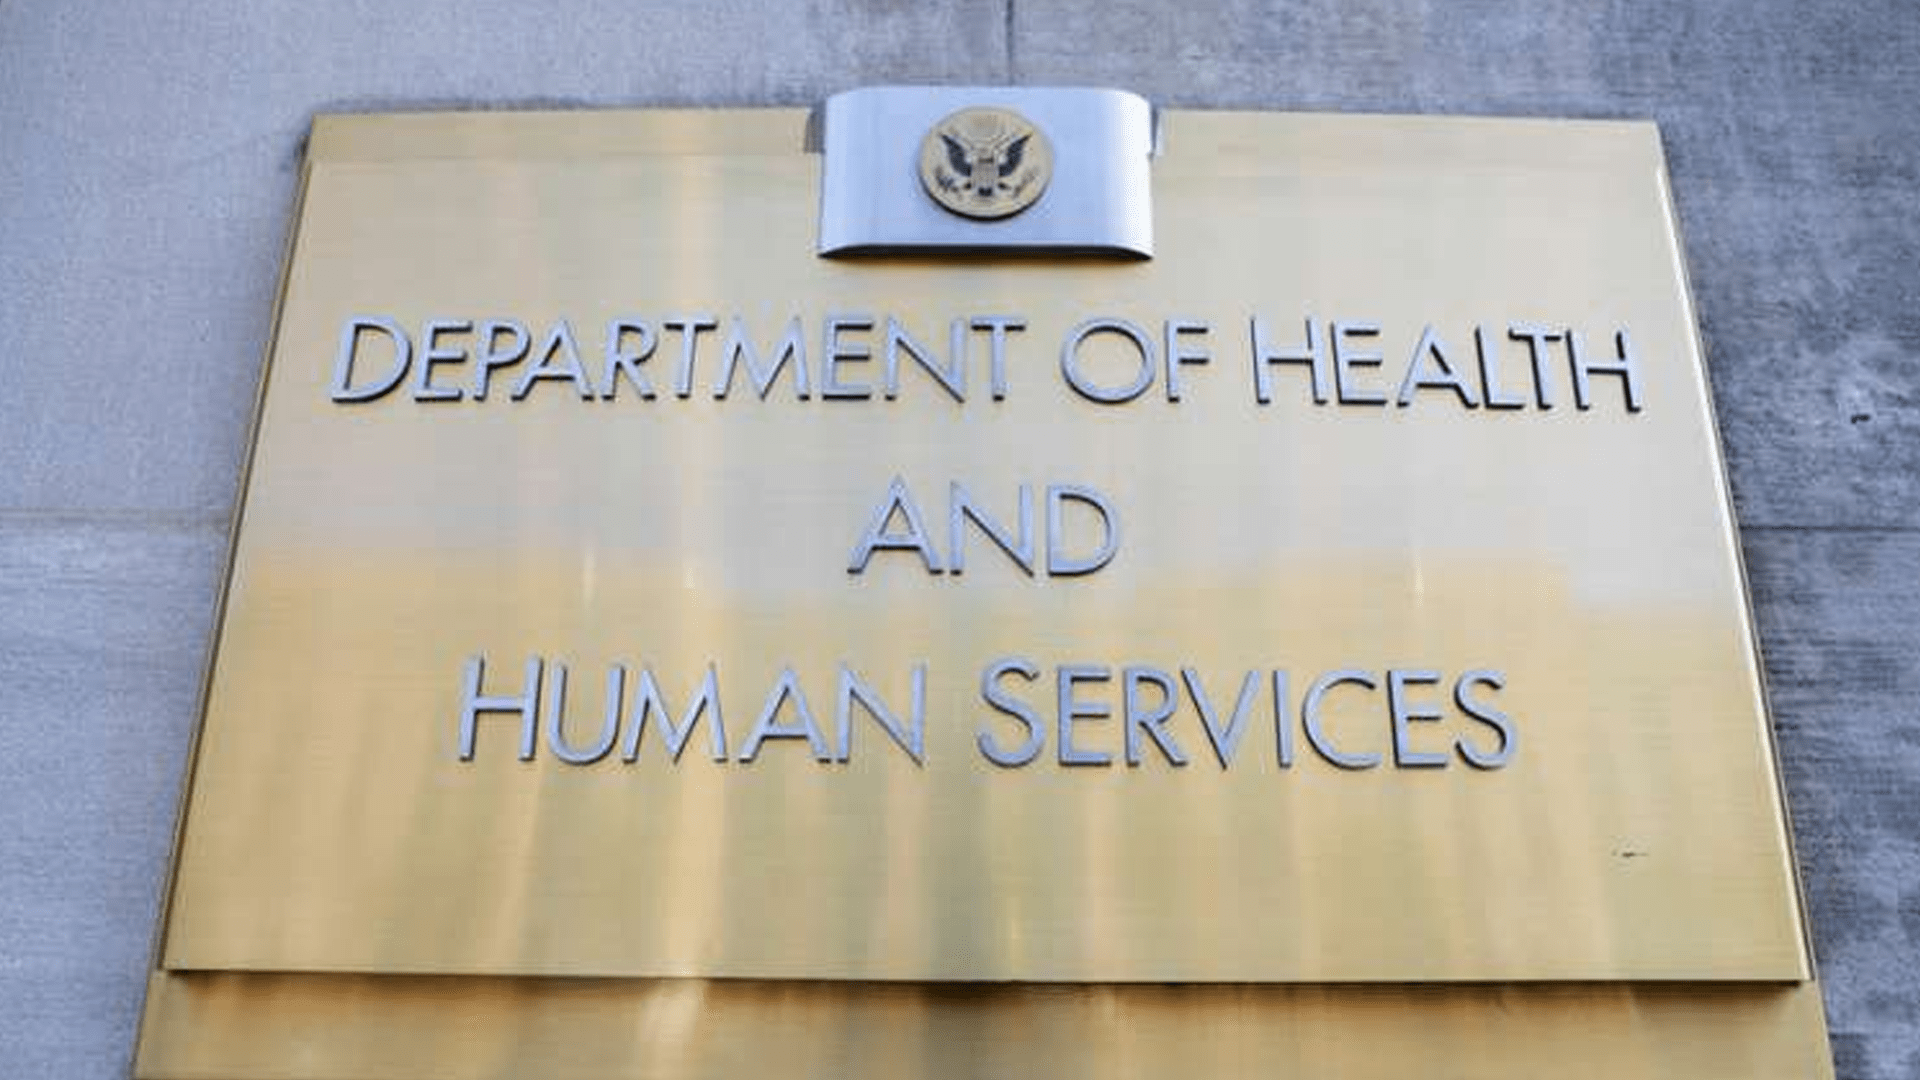 Christian medical groups oppose health secretary nominee